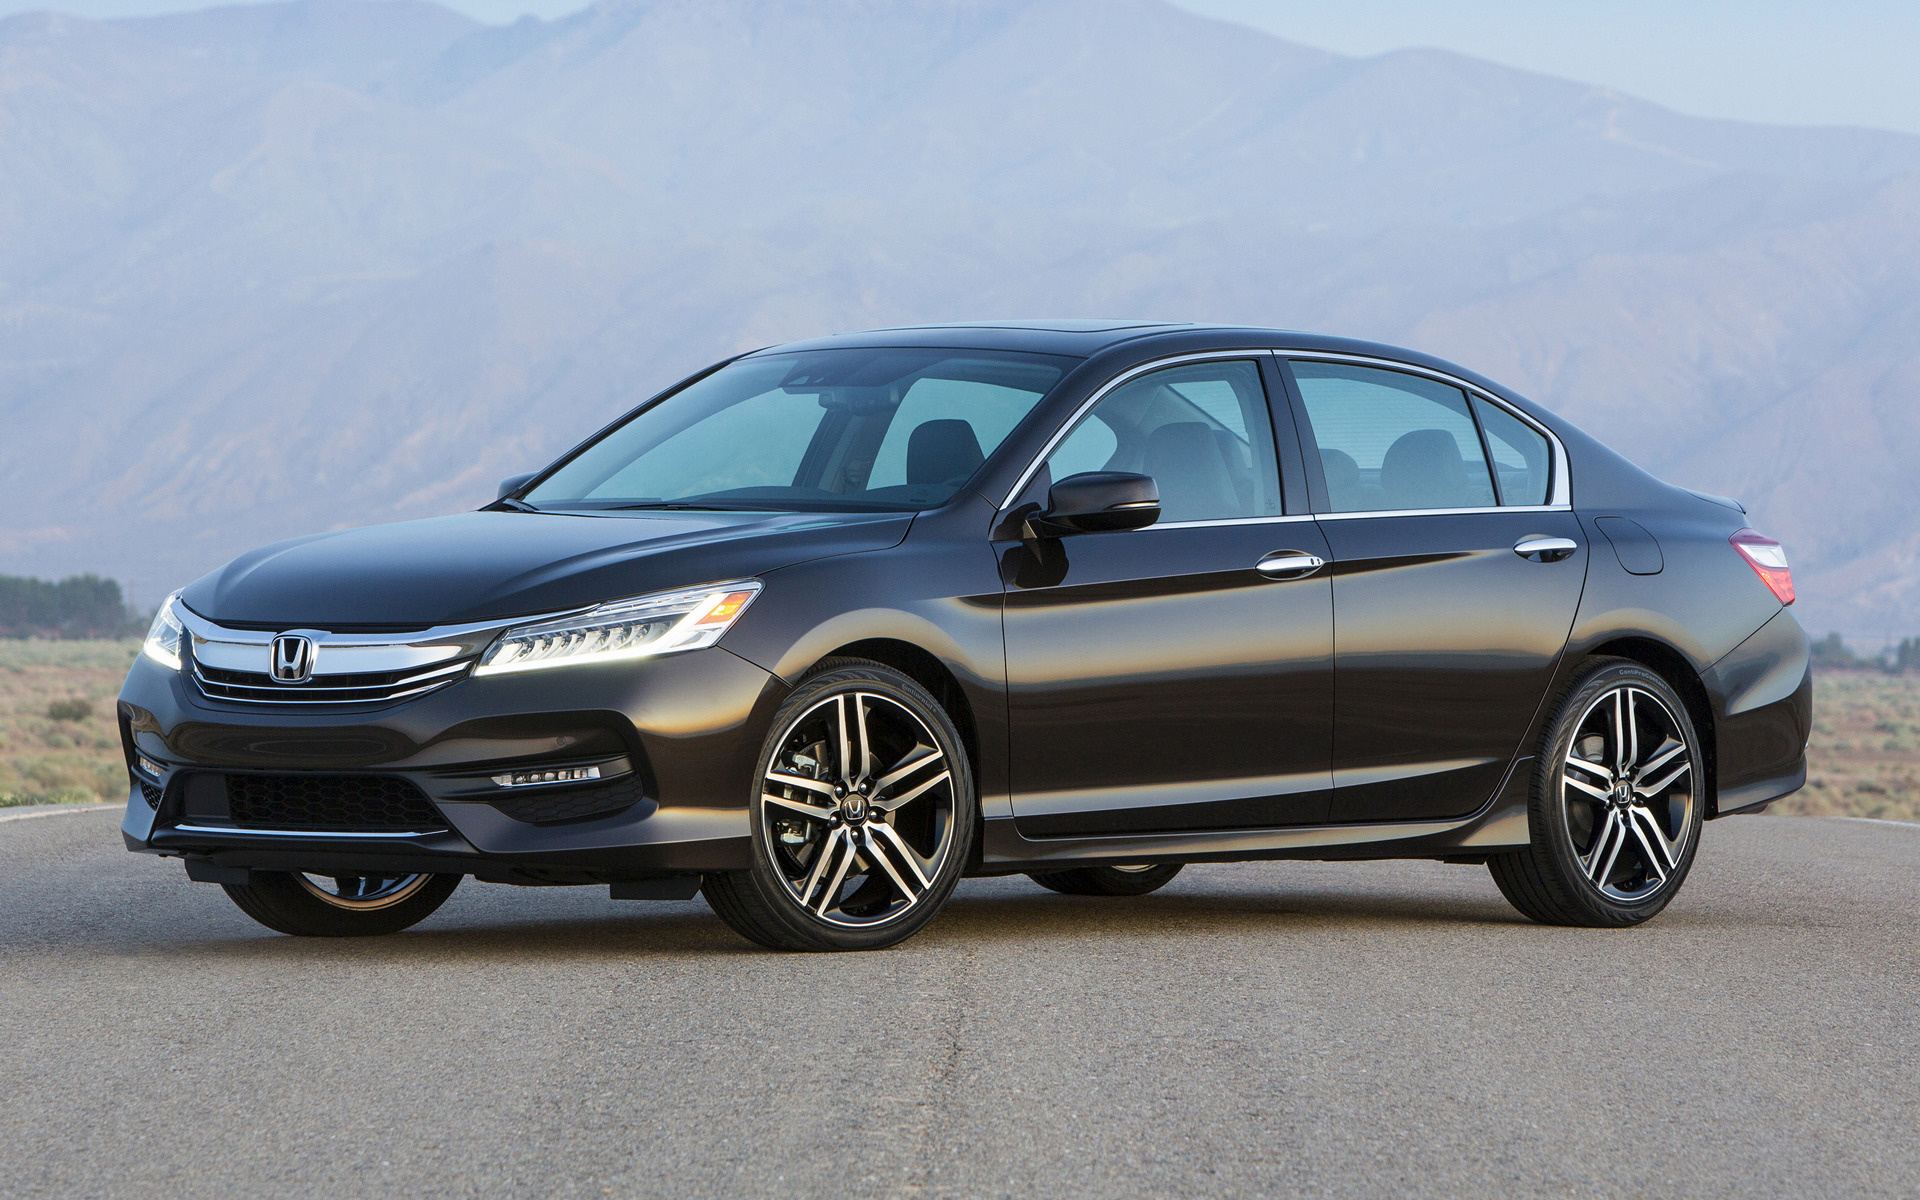 2016 Honda Accord Ex L V6 >> 2016 Honda Accord Touring (US) - Wallpapers and HD Images ...